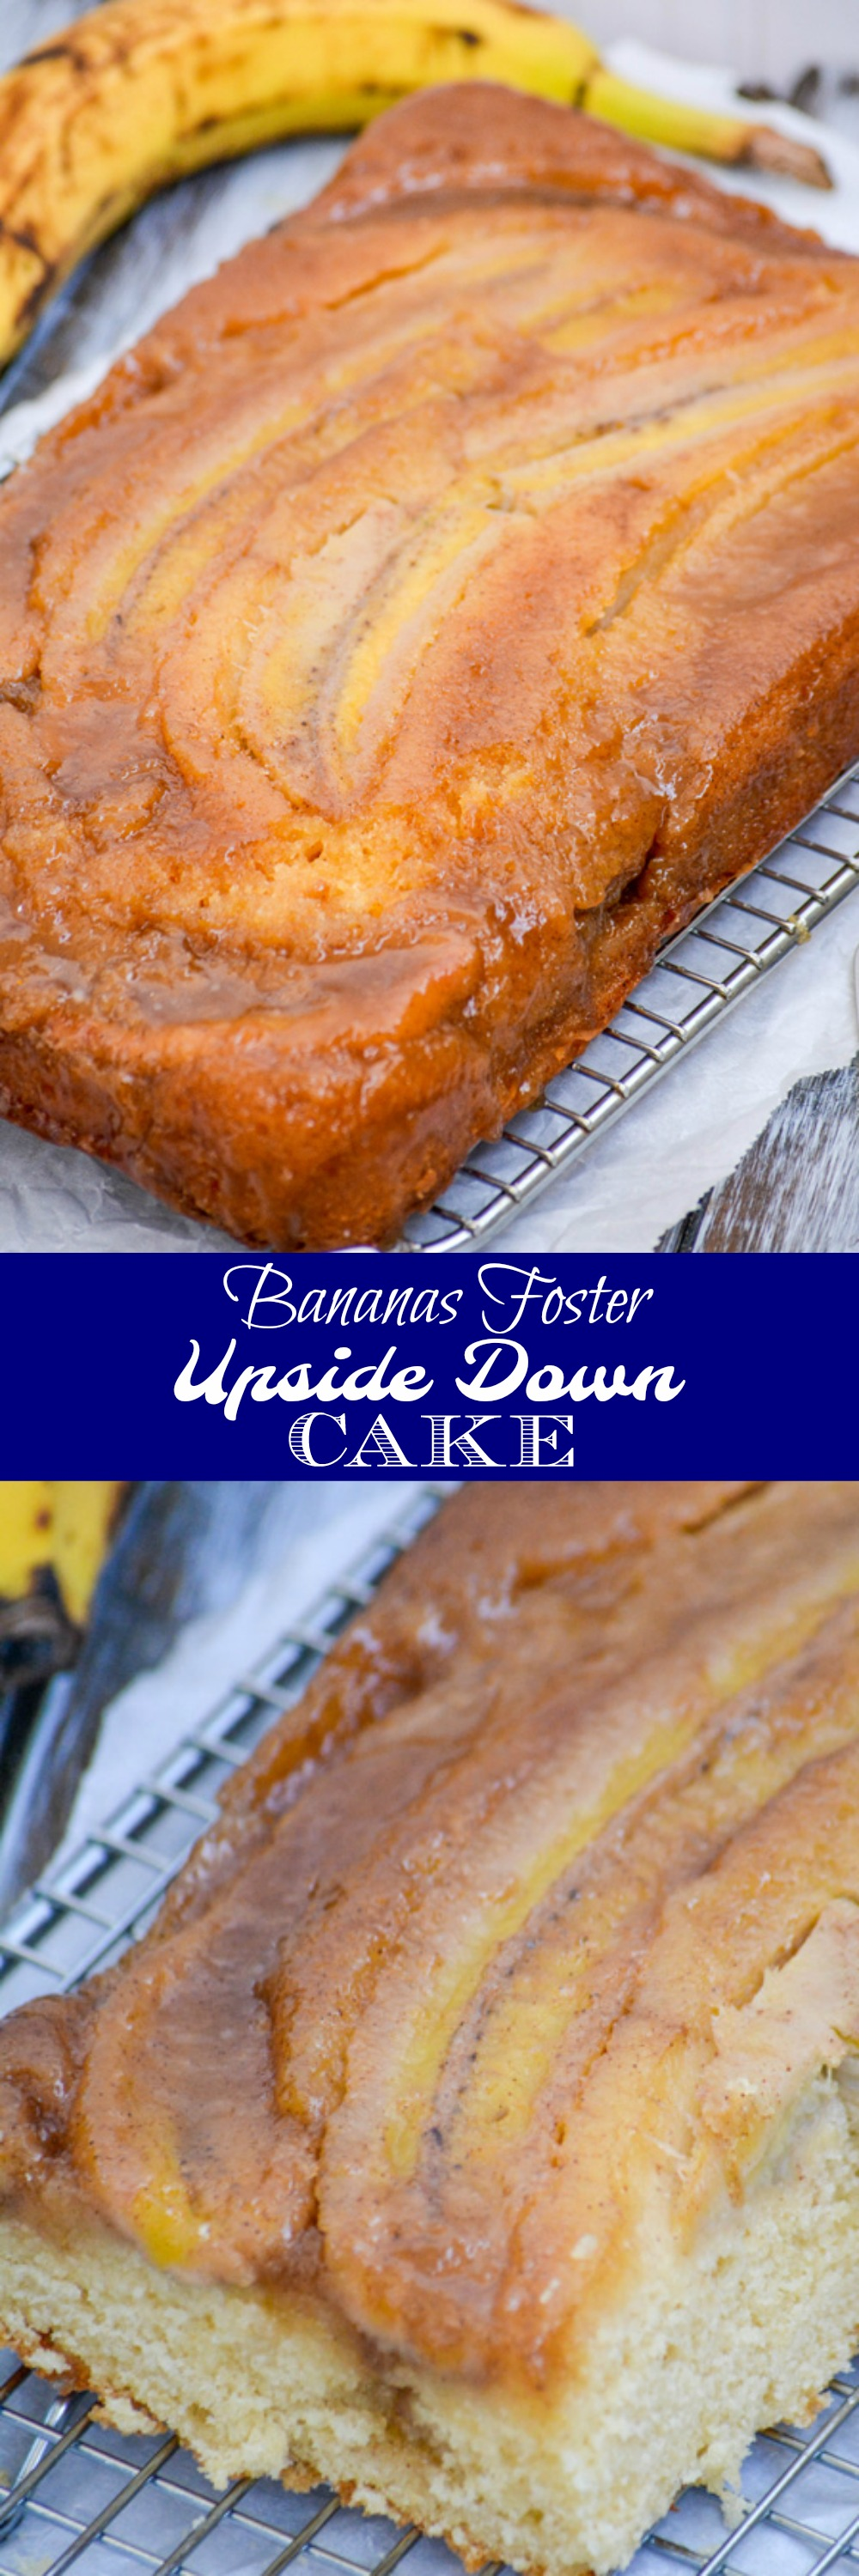 What are your dessert dreams made of? Mine are everything this Bananas Foster Upside Down Sheet Cake offers: boozy, caramelized, fruit filled, with a moist, spongy cake casing in a gorgeous presentation- that I can enjoy for breakfast OR dessert. Talk about options!